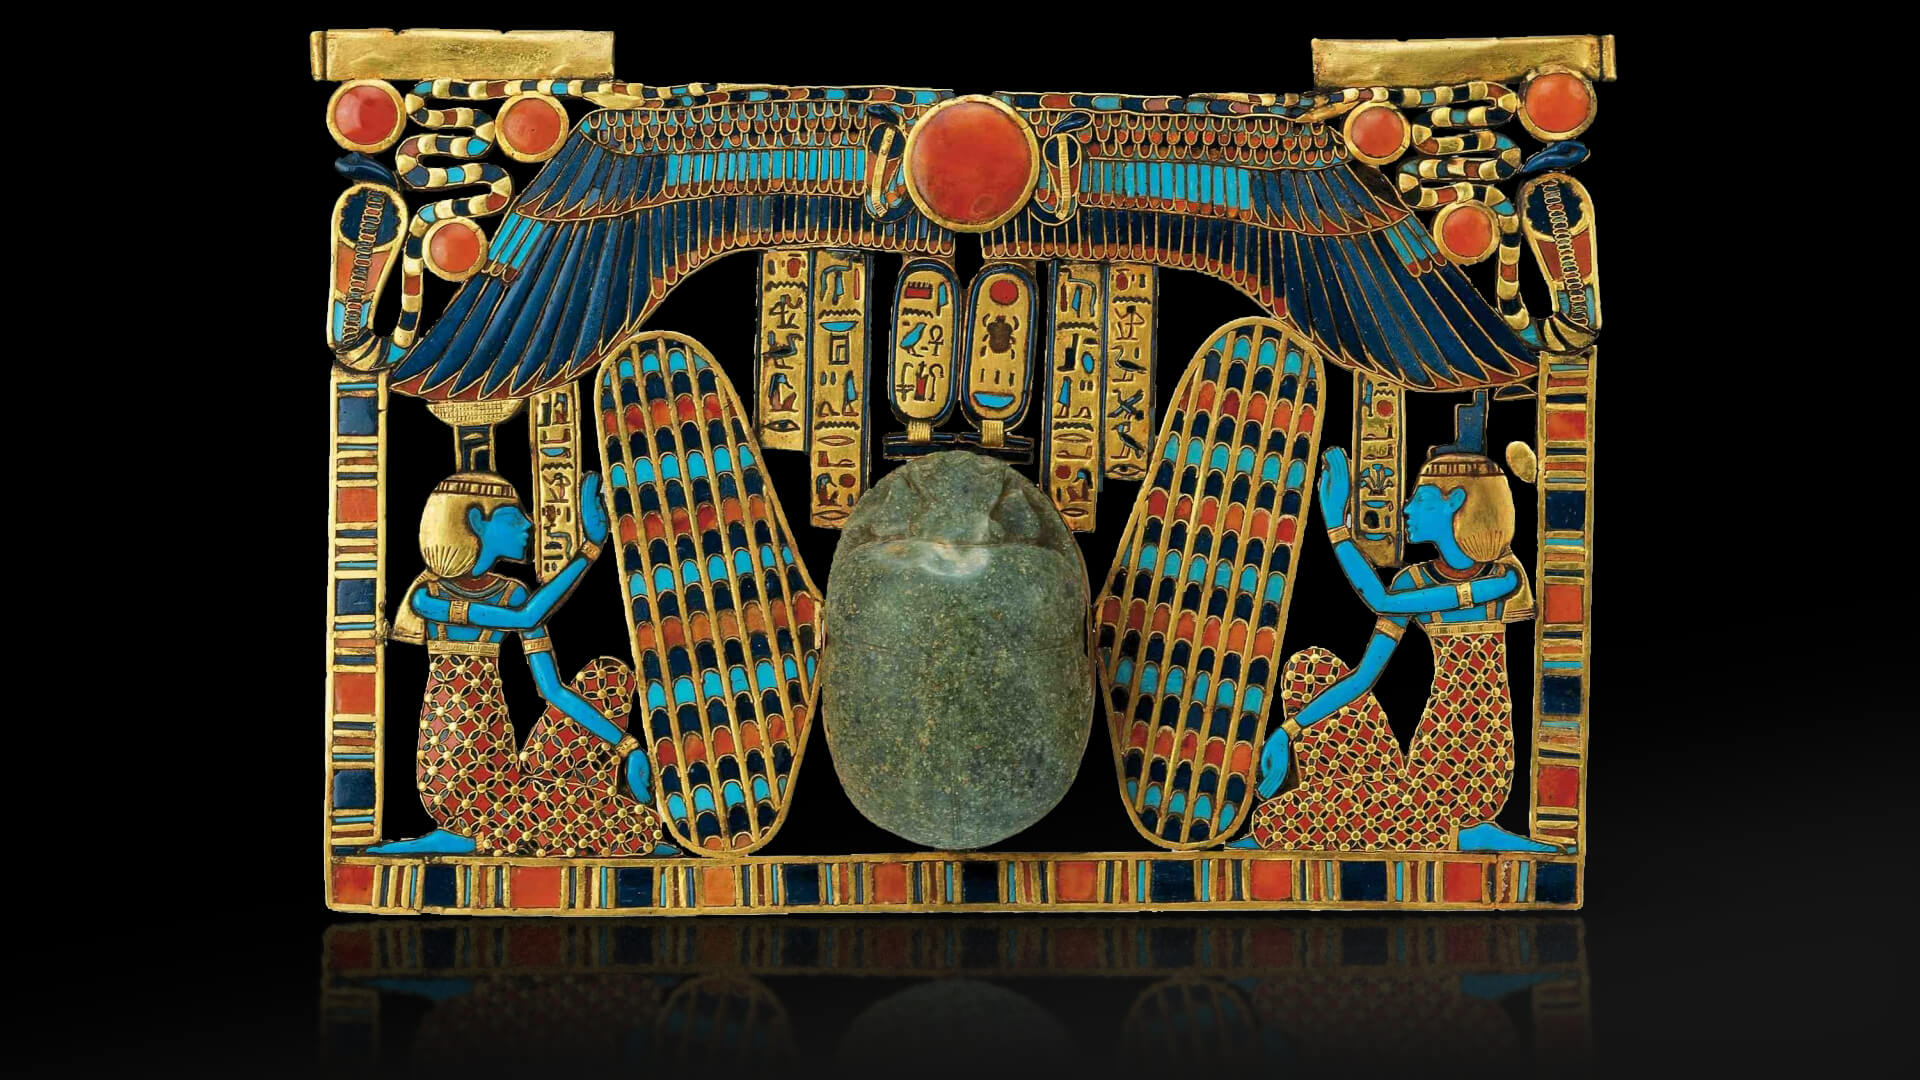 winged, large scarab beetle riding on a sacred barque and flanked by the goddesses Isis and Nephthys. The scarab serves a double function: as a heart scarab and as the ba of the sun god lighting the way to the Tutankhamun. Inlaid pectoral, scarab beetle with Isis and Nephthys. underworld.